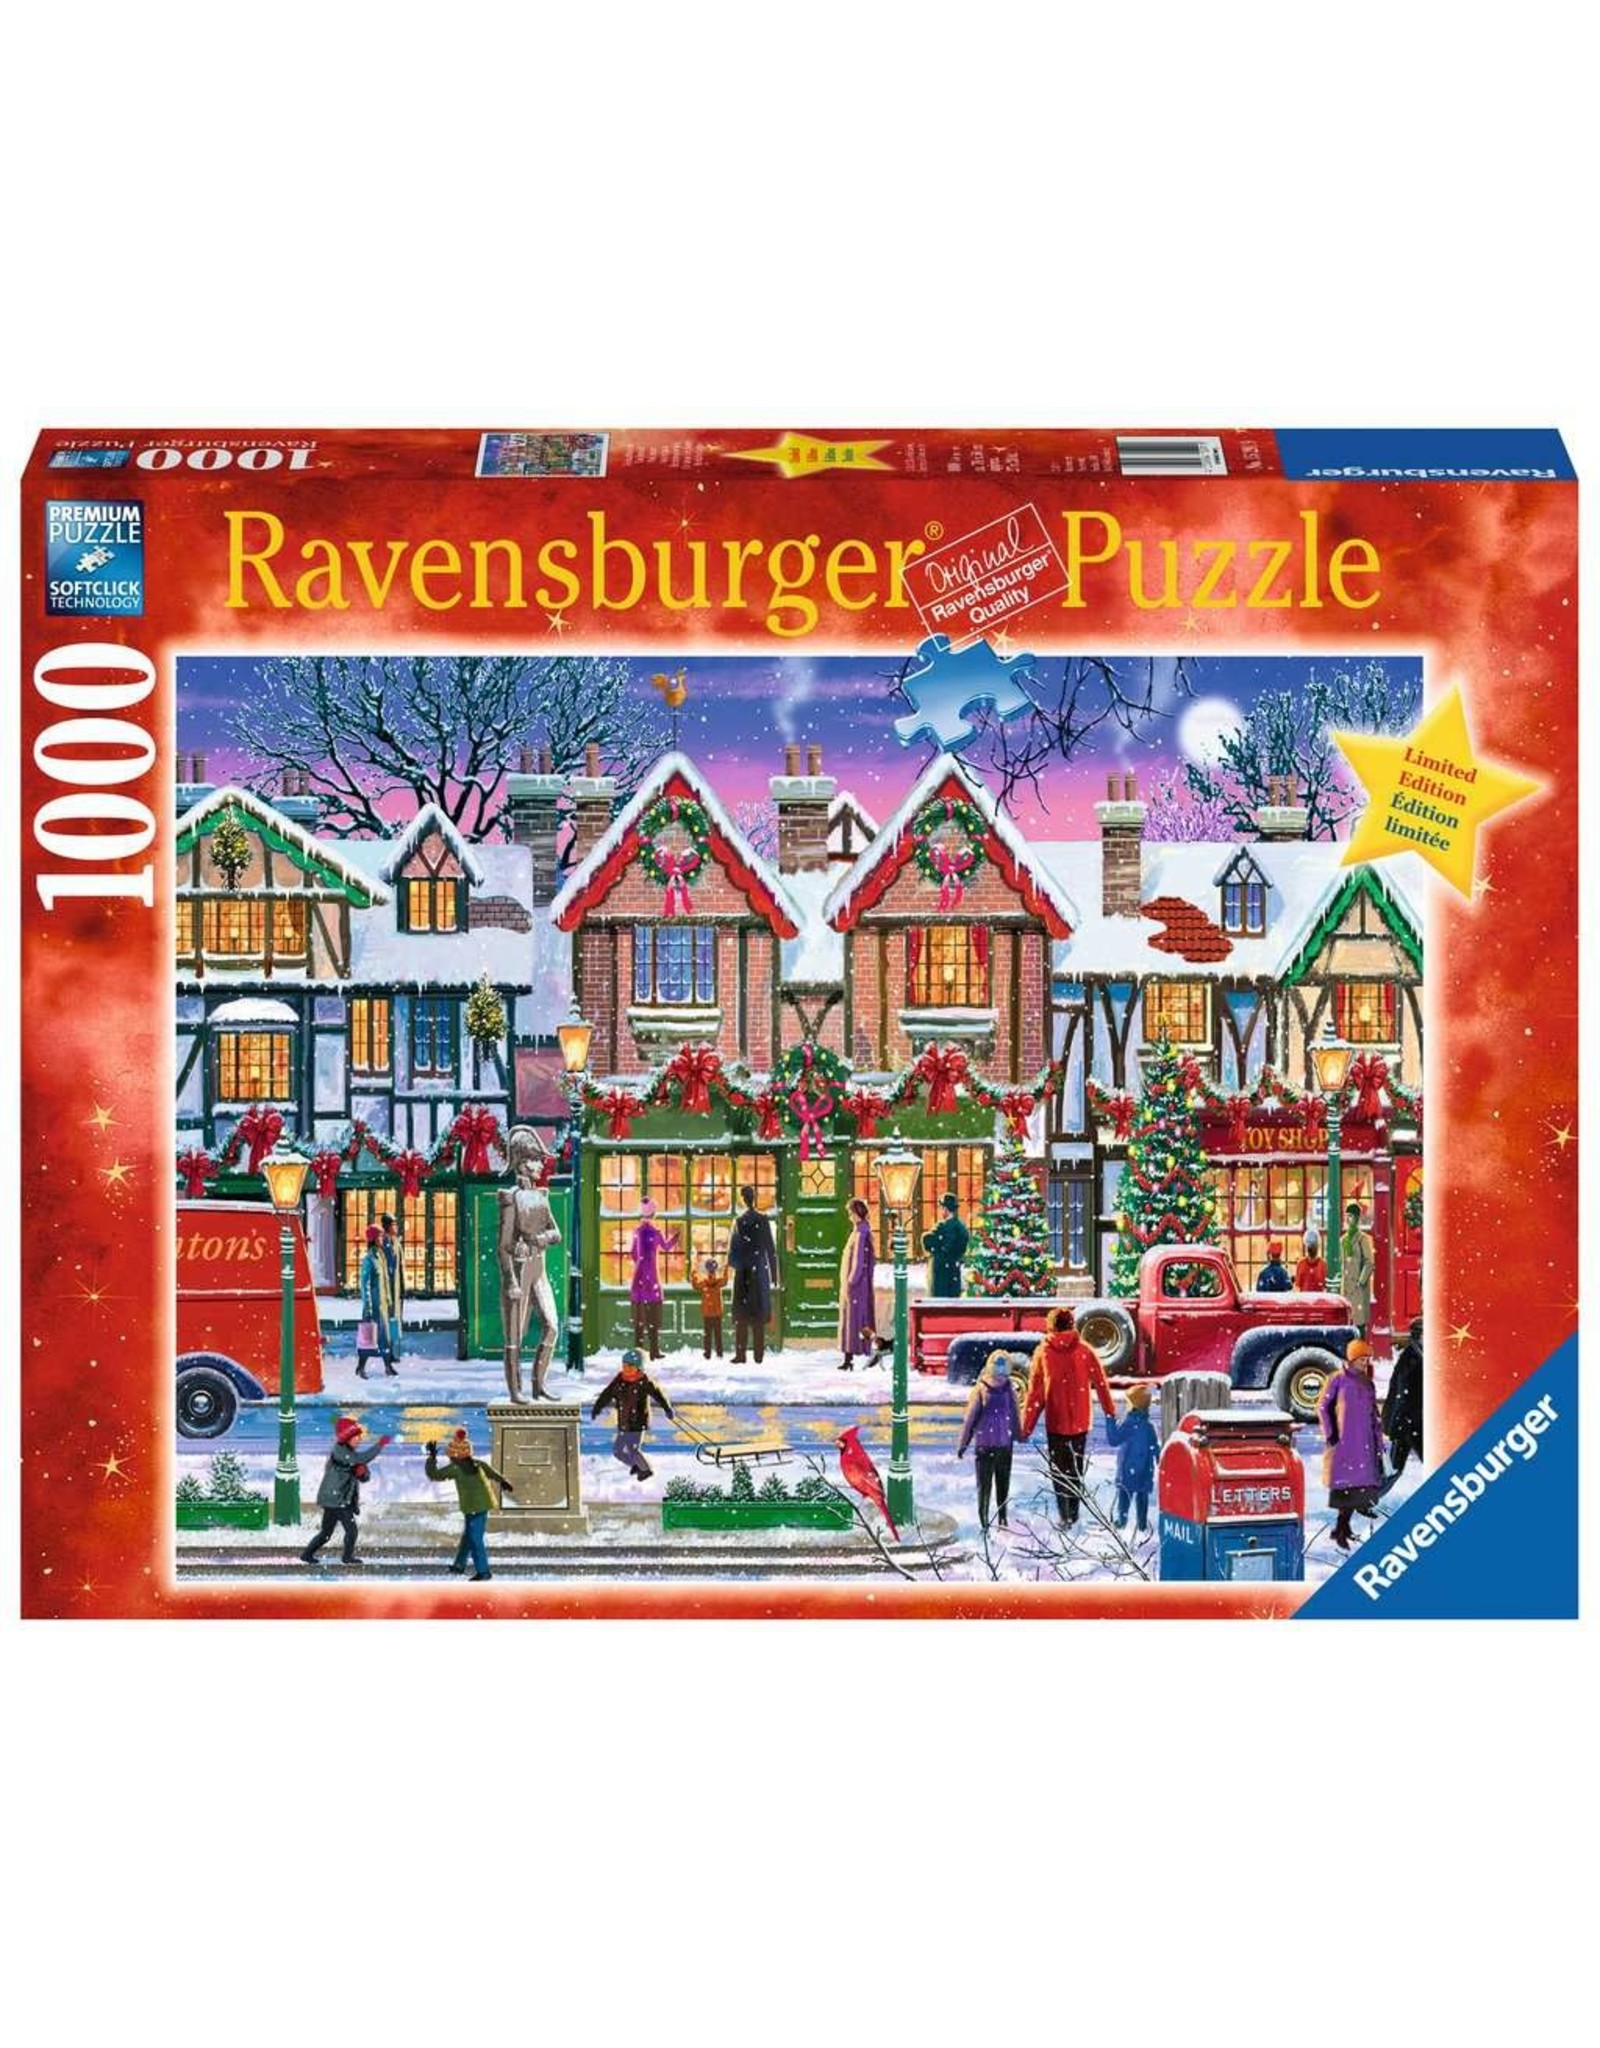 Ravensburger 1000 pcs. Christmas in the Square Puzzle